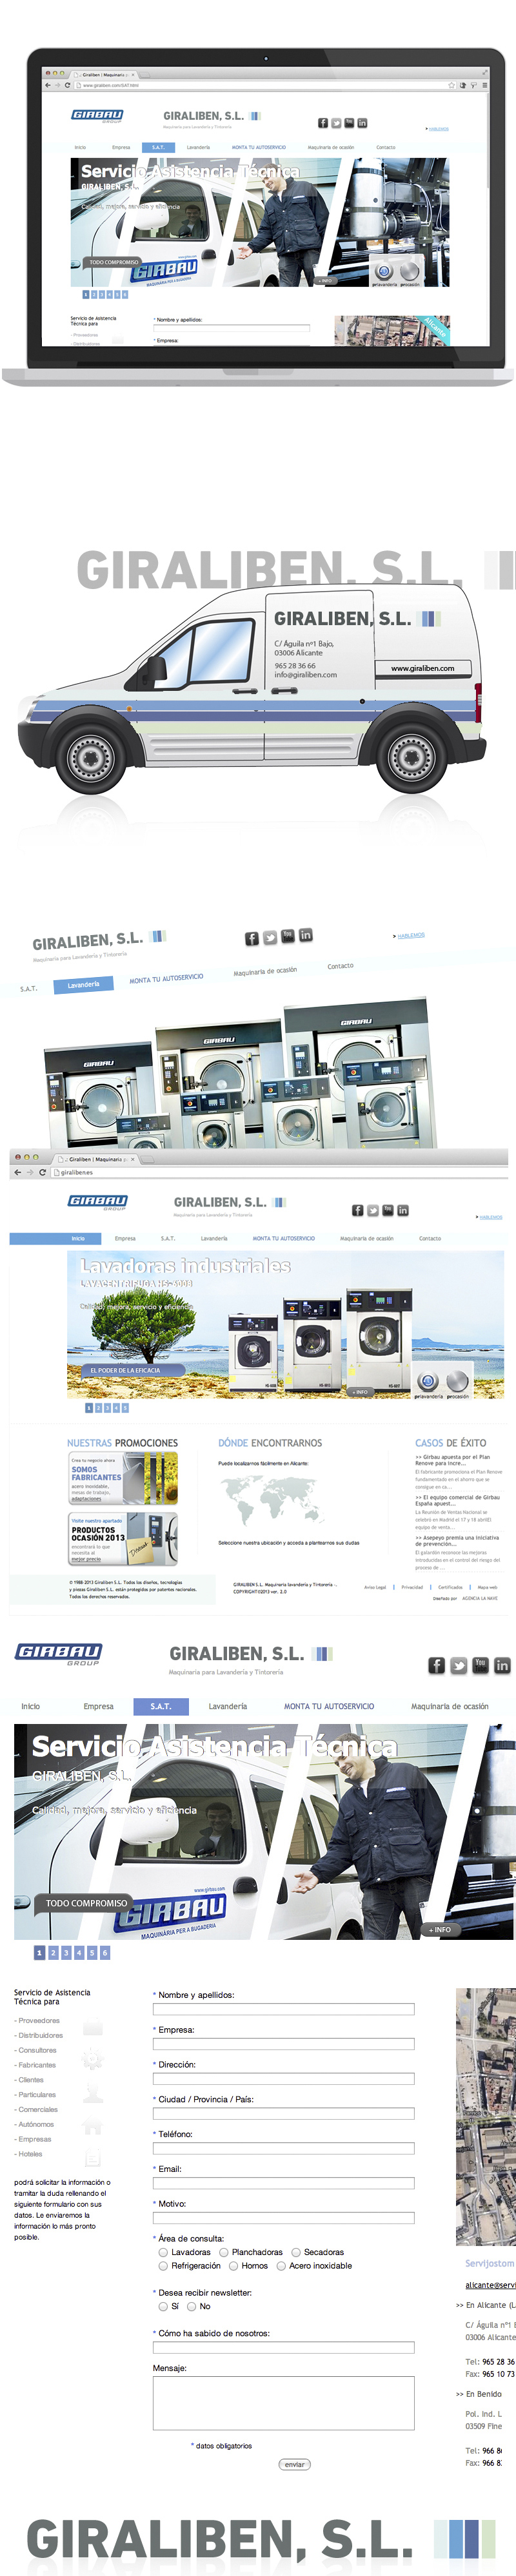 Giraliben Machinery for laundry and dry cleaning pieces image